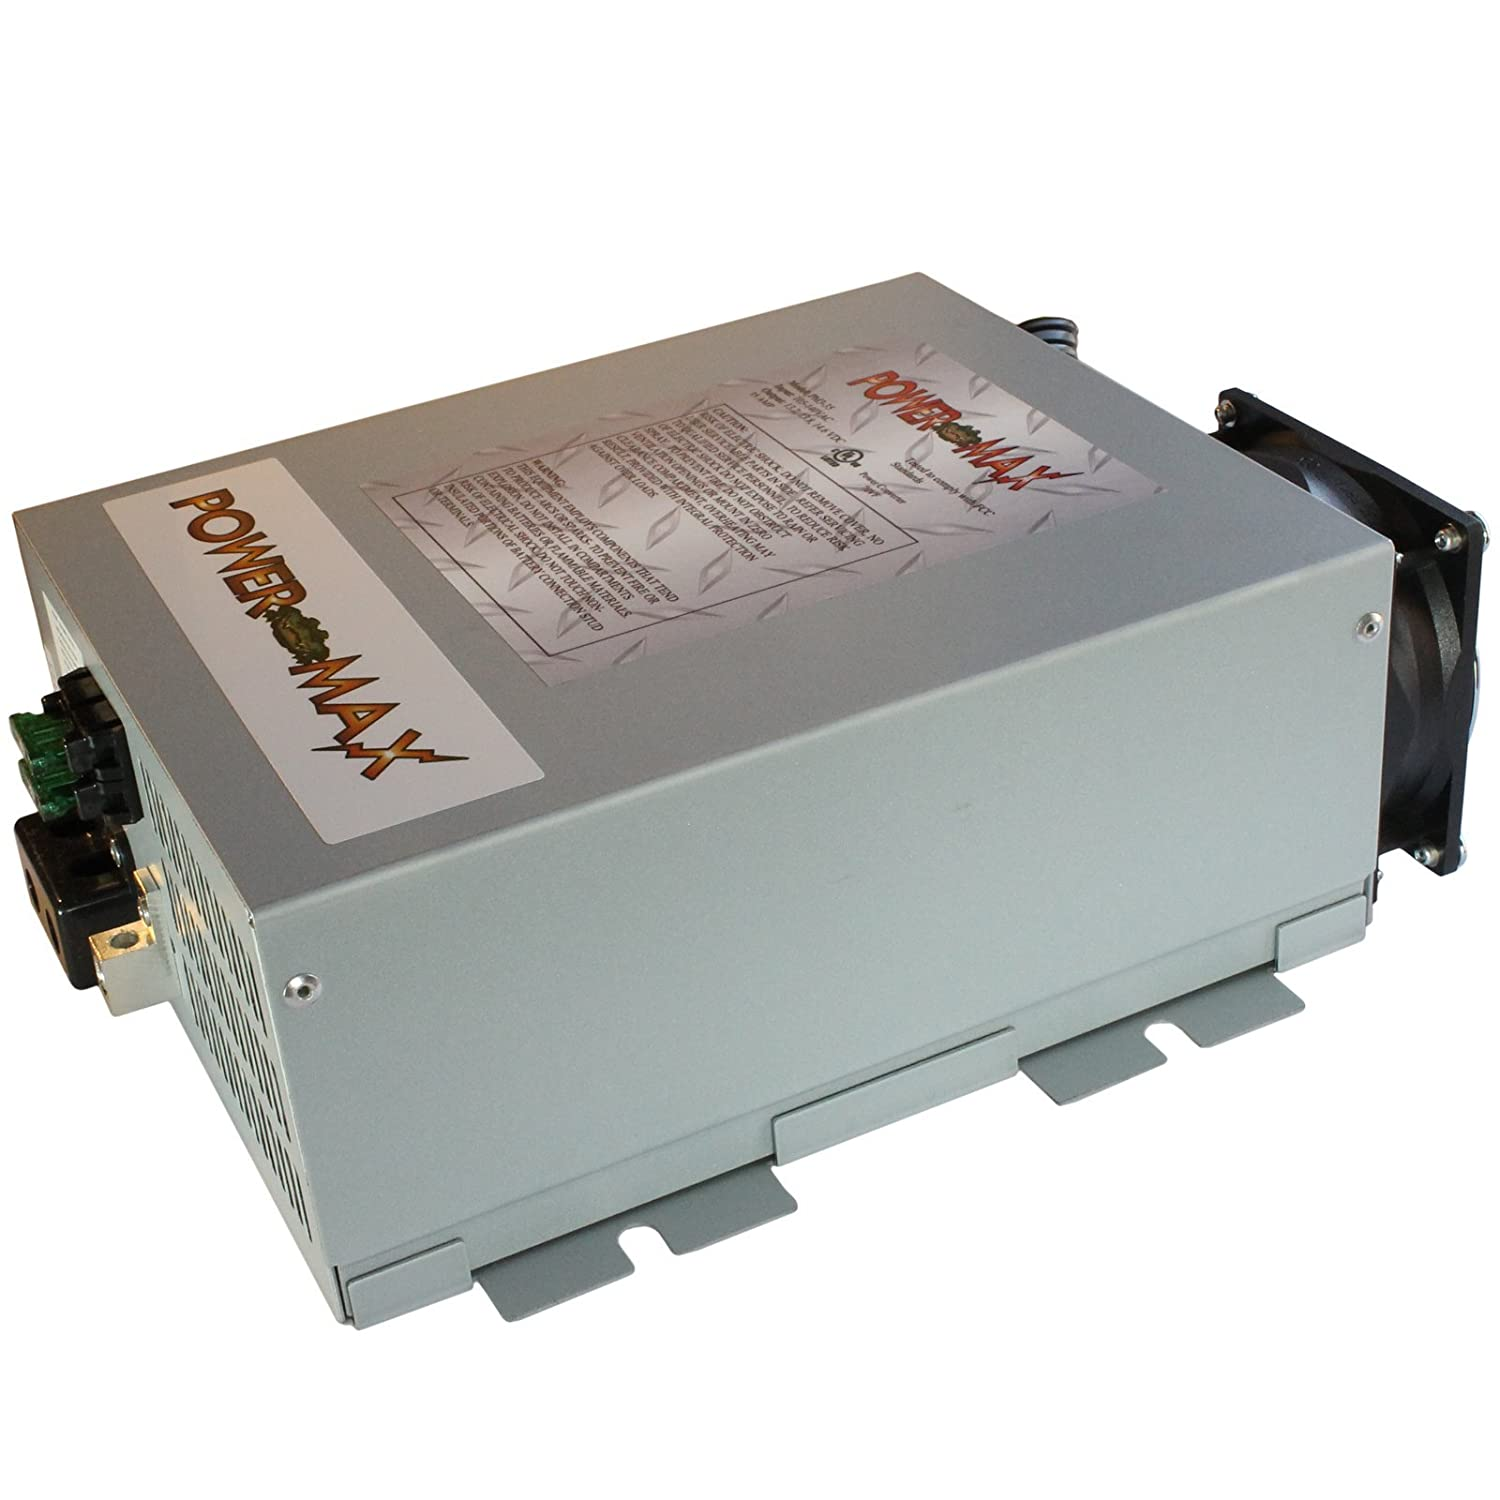 71GpF8pfL%2BL._SL1500_ amazon com powermax 110 volt ac to 12 volt dc power supply  at gsmx.co